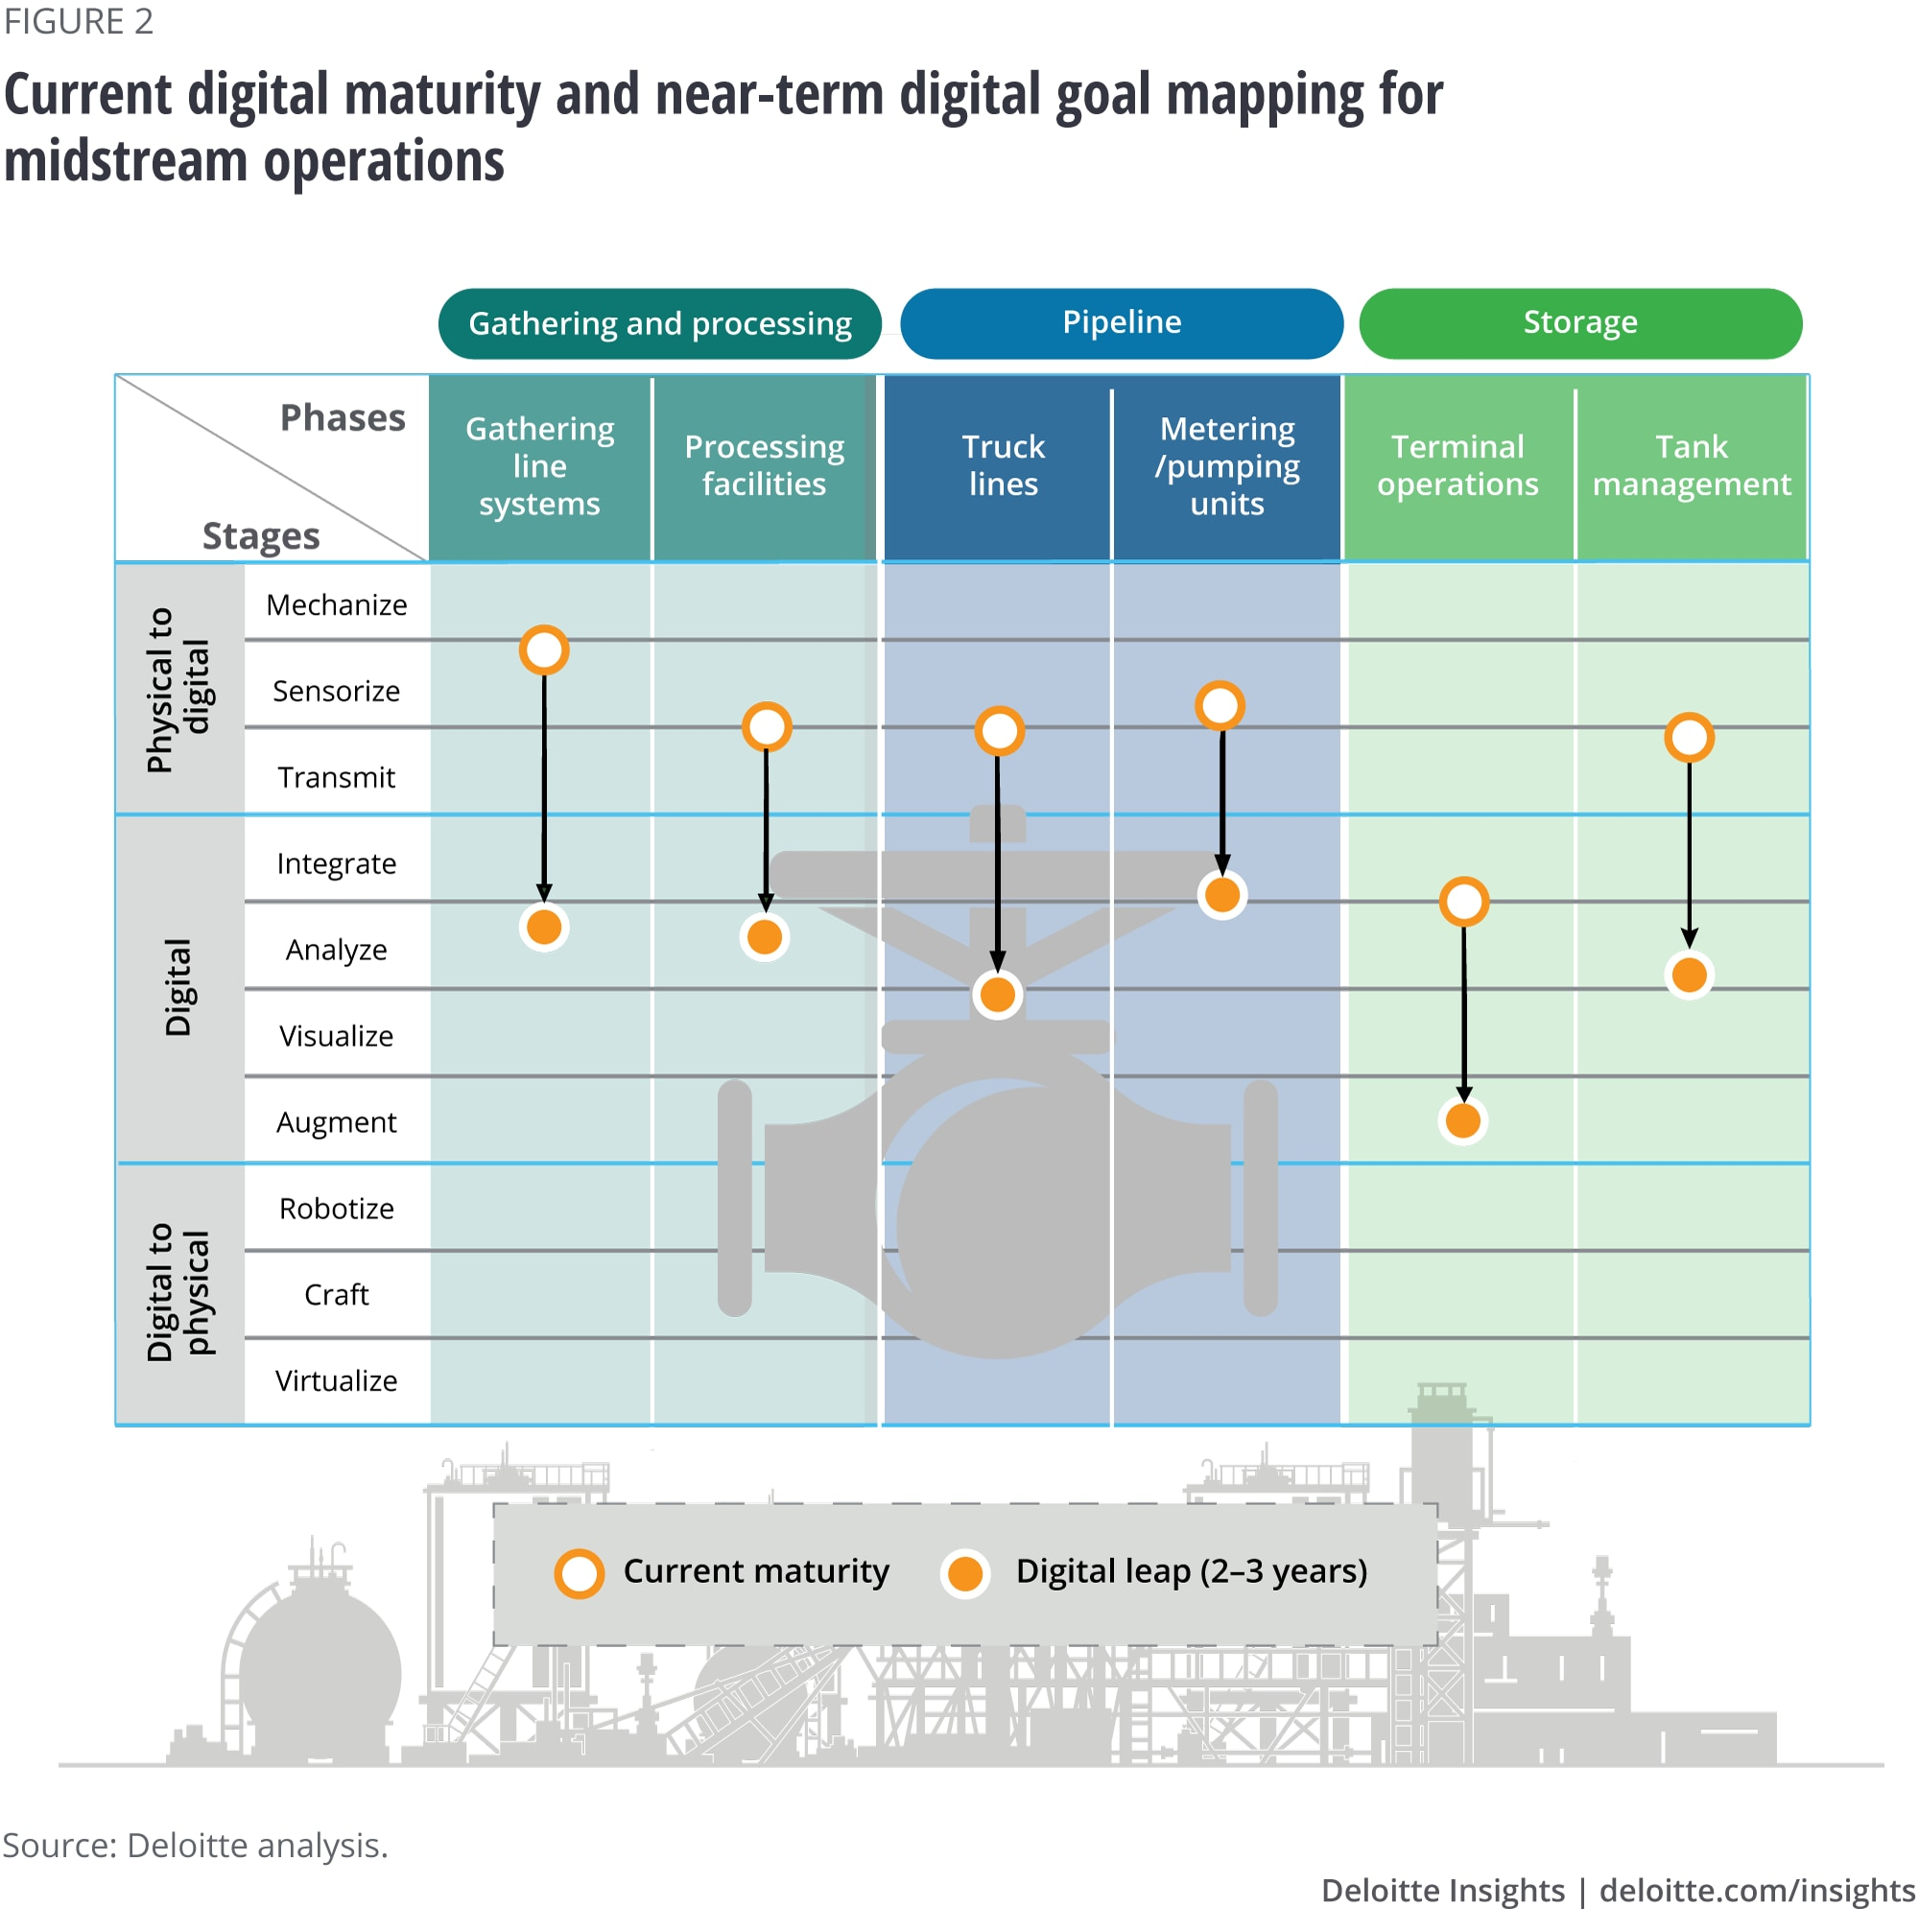 Current digital maturity and near-term digital goal mapping for midstream operations